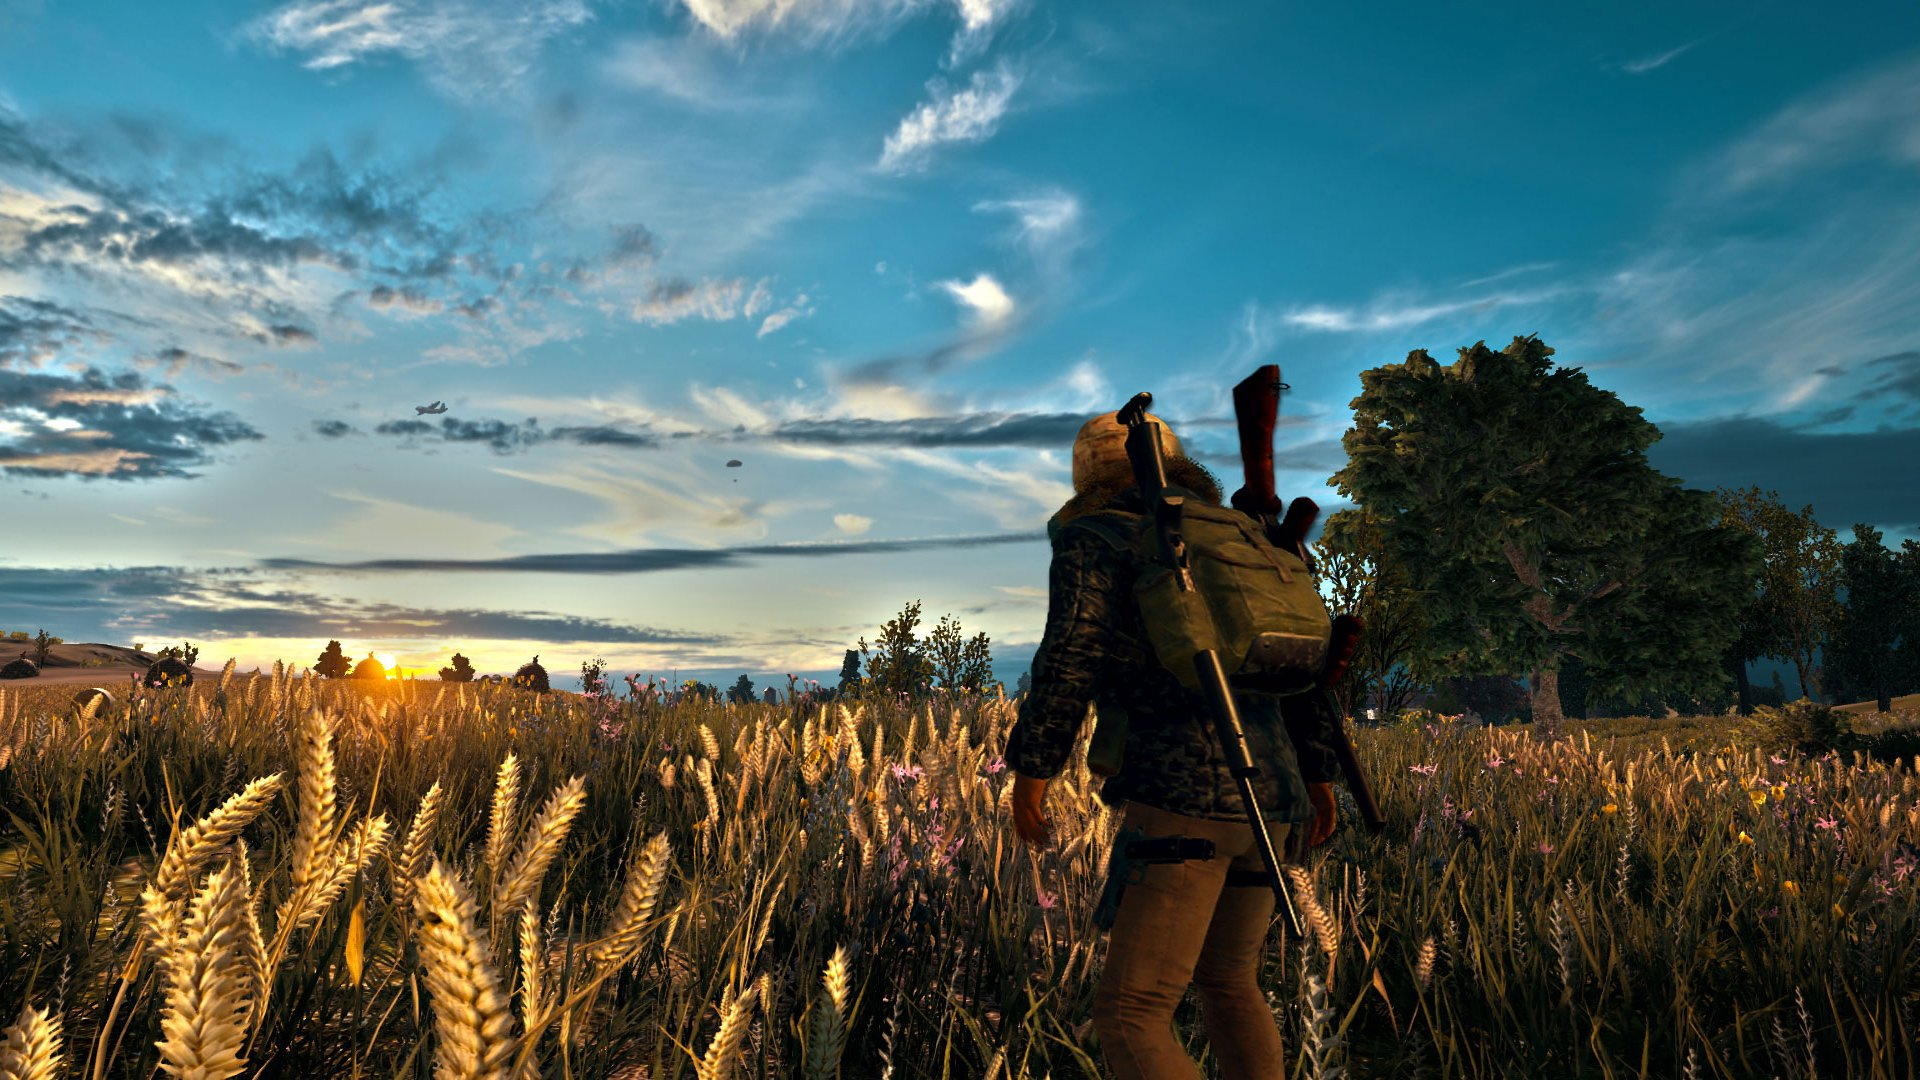 Top 13 Pubg Wallpapers In Full Hd For Pc And Phone: PlayerUnknown´s Battlegrounds